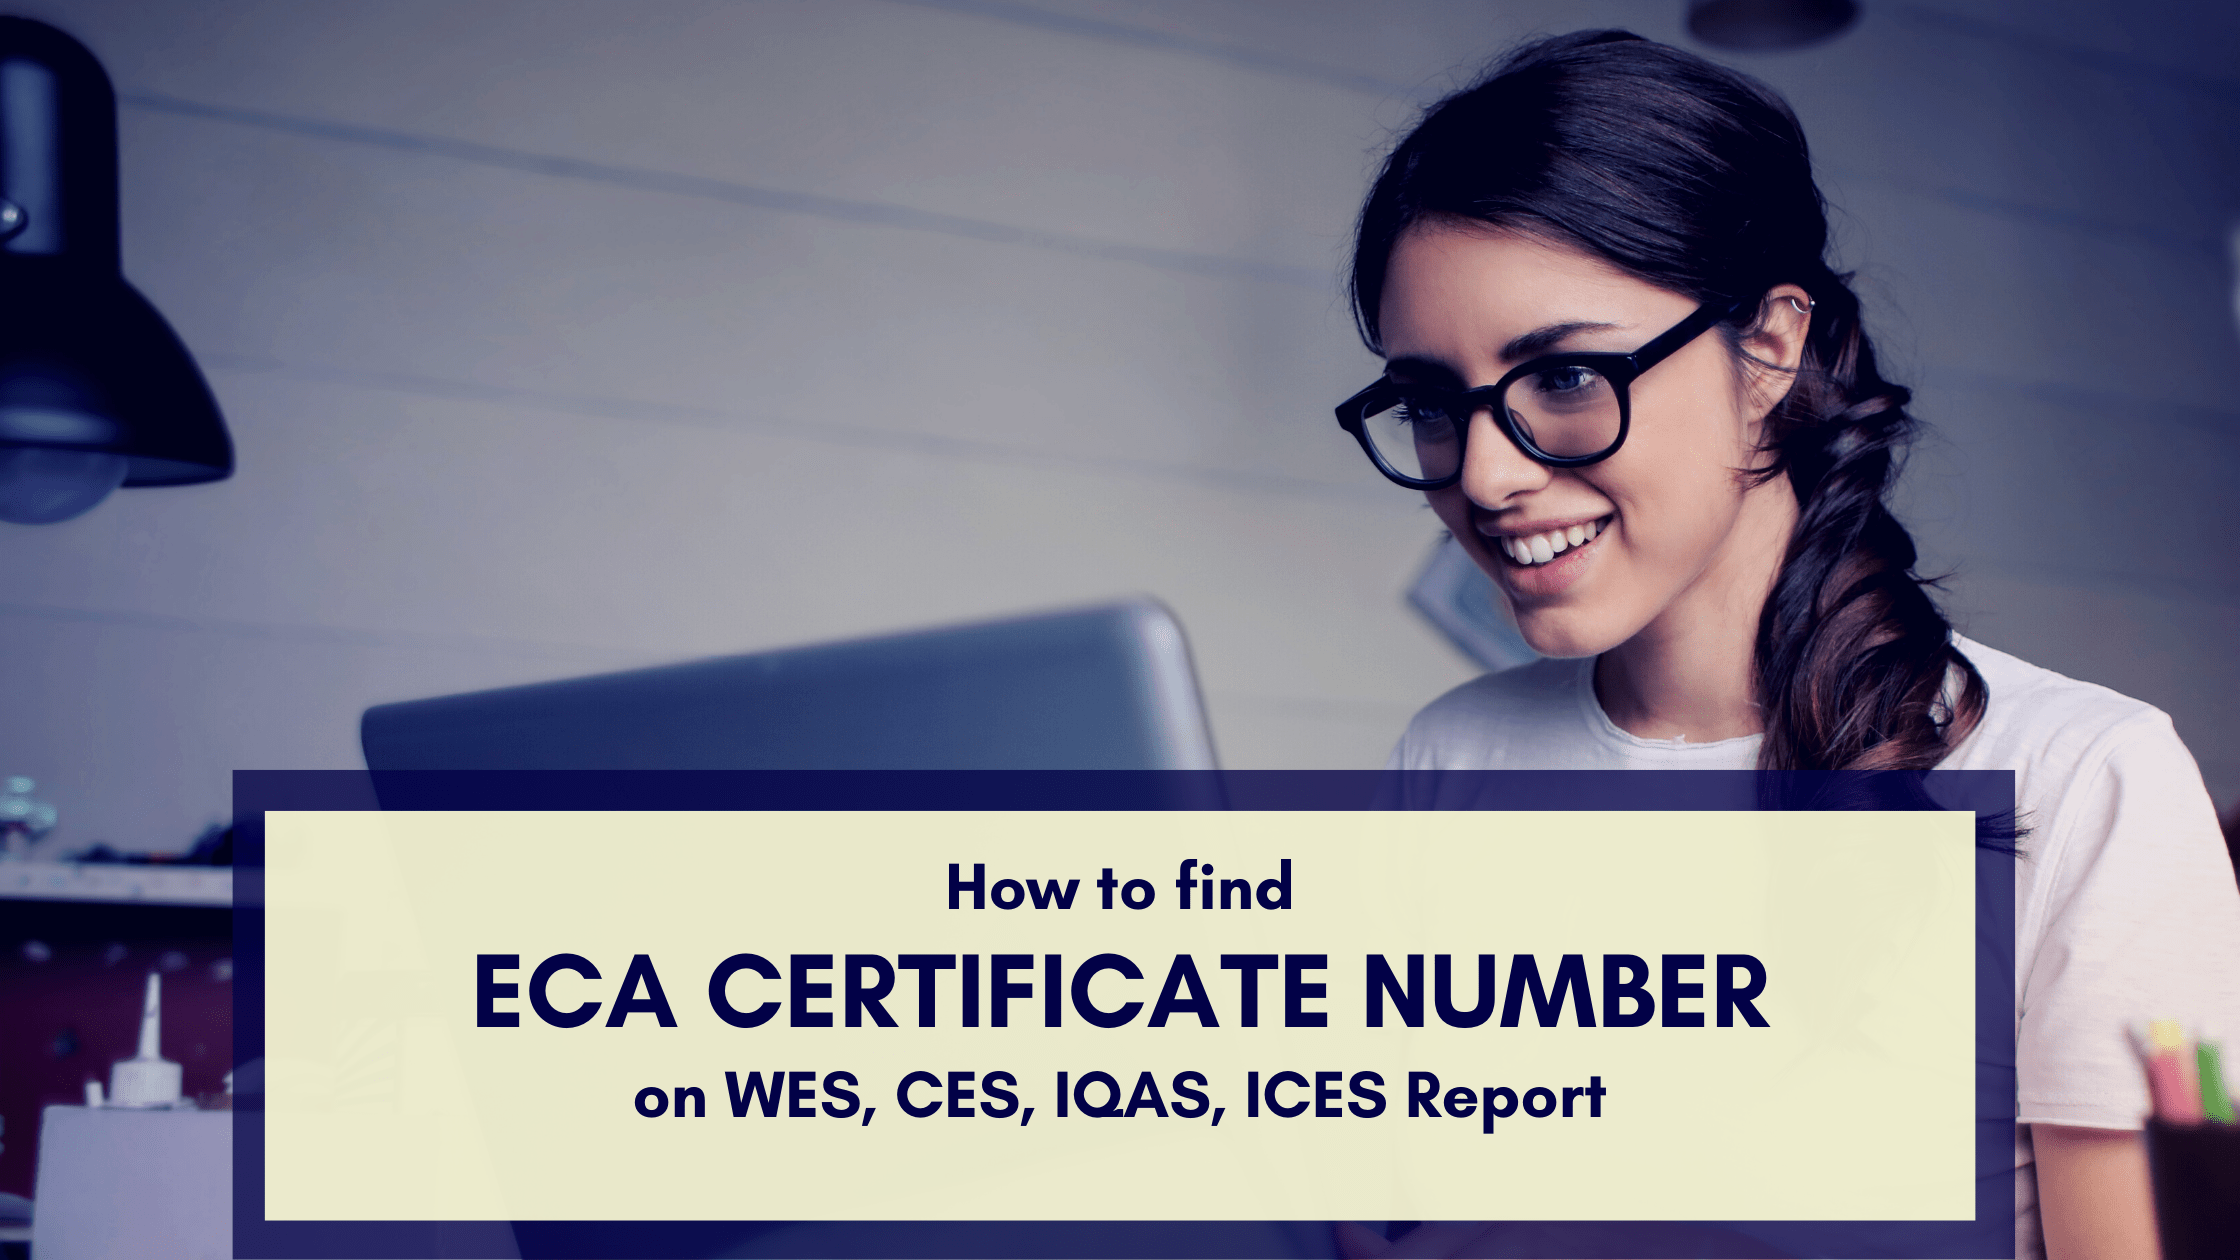 How to Find ECA Certificate Number on WES, CES, IQAS, ICES Report?